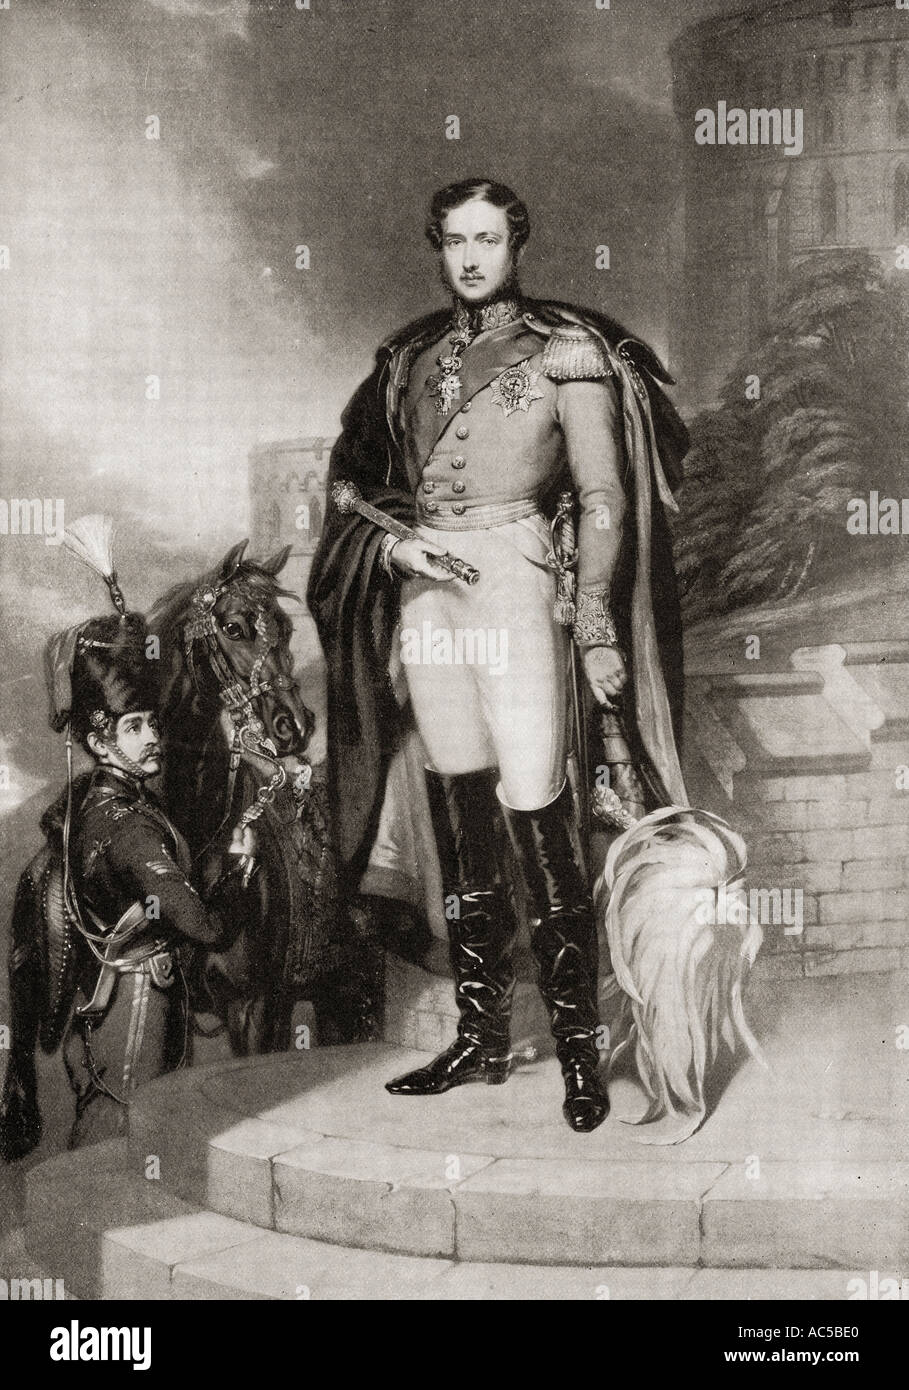 Prince Albert of Saxe-Coburg and Gotha, 1819 –1861.  Husband and consort of Queen Victoria. - Stock Image